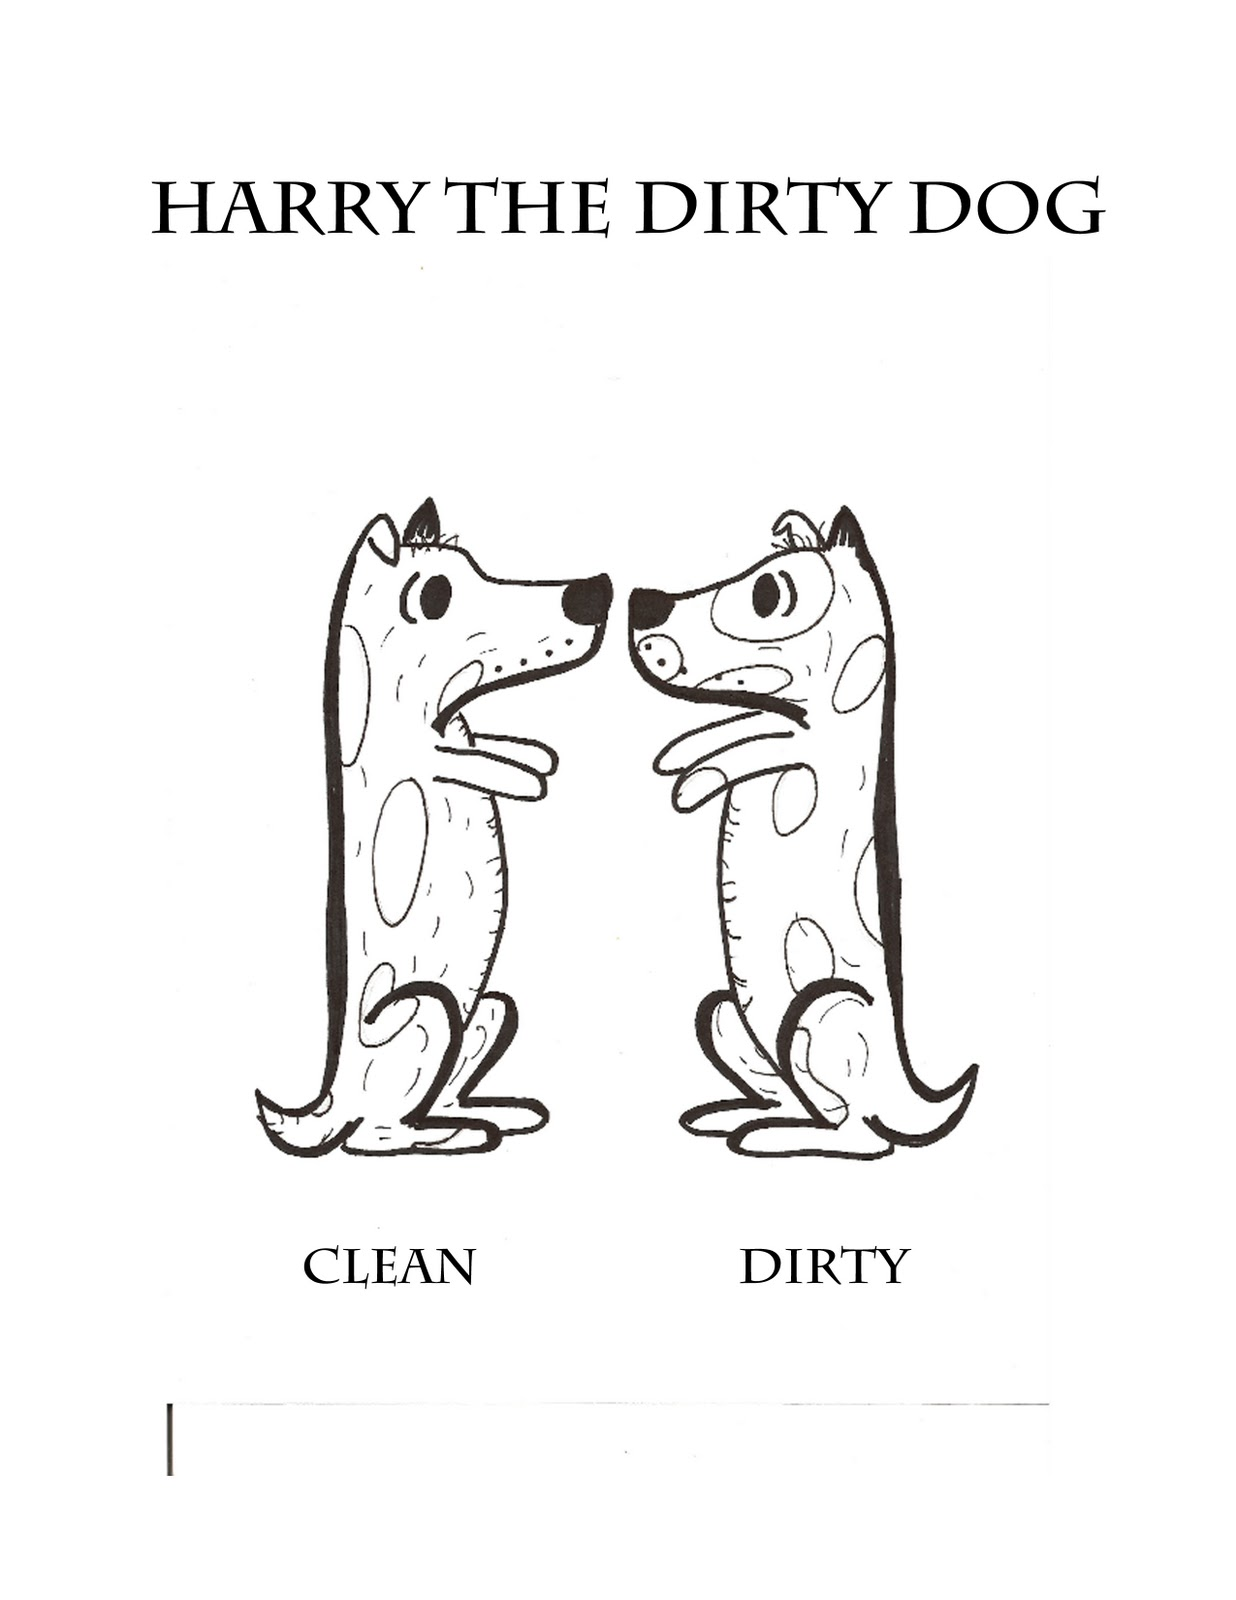 I Heart Art Harry the Dirty Dog